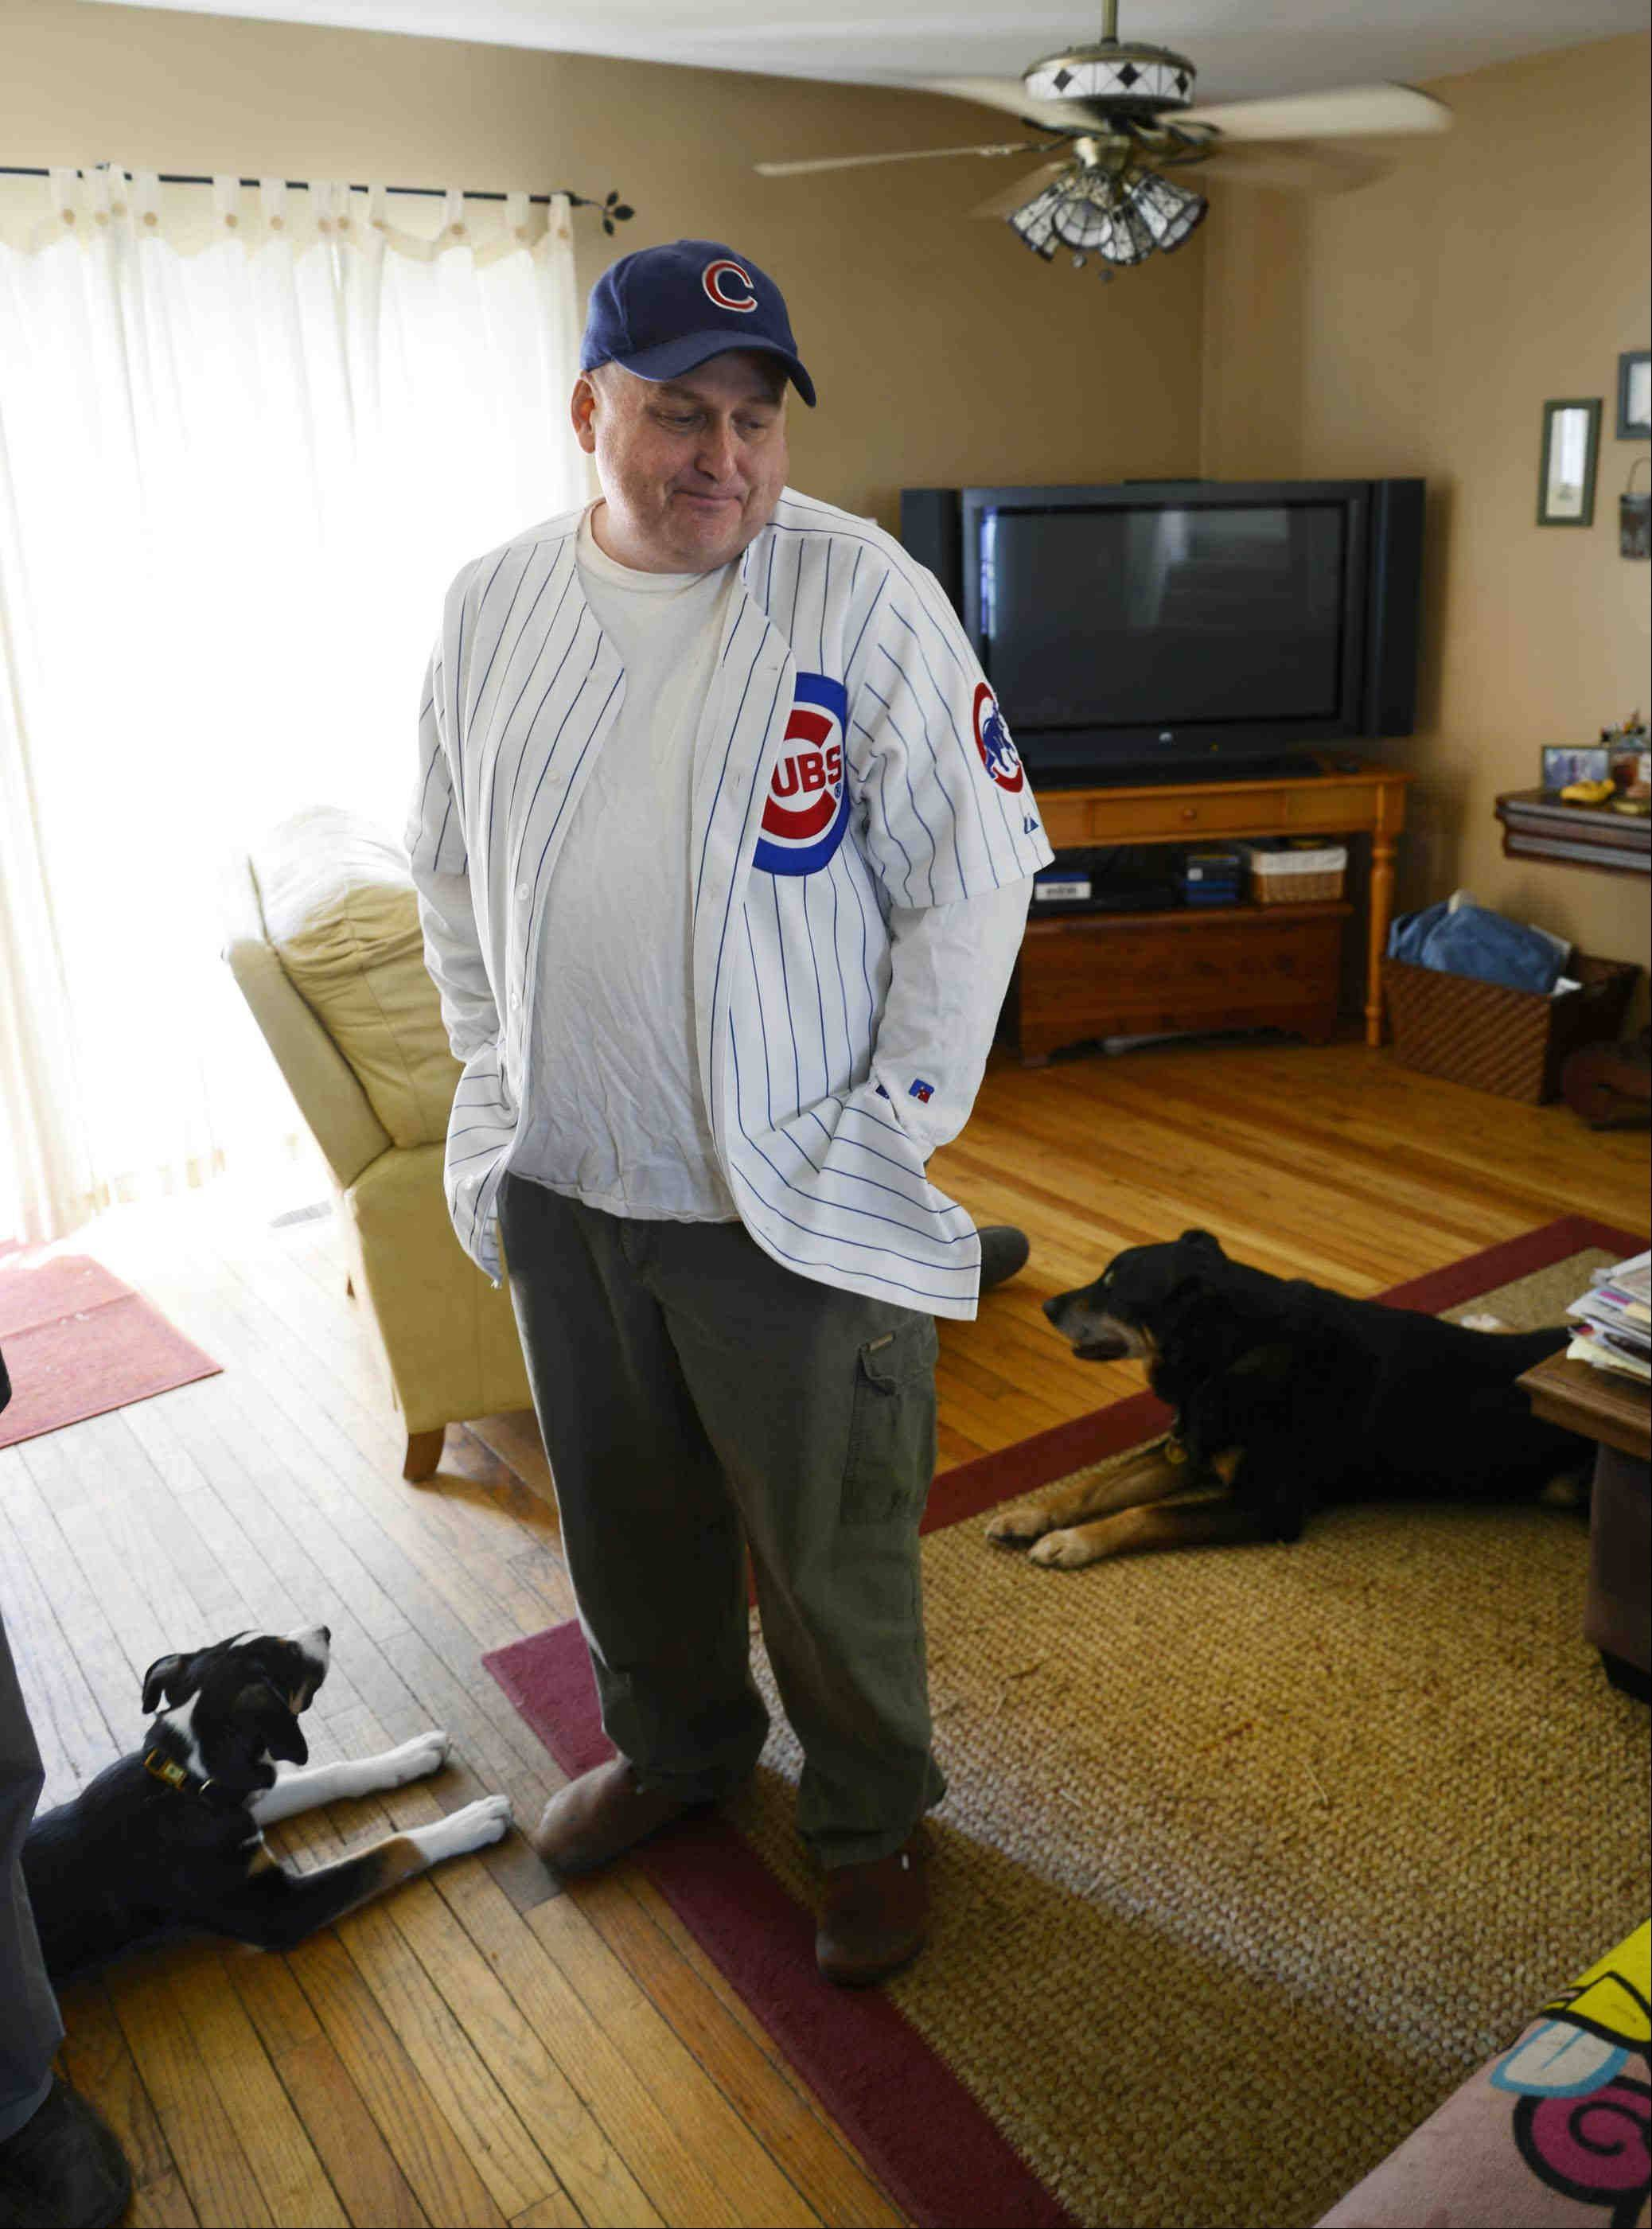 With dogs Homer, right, and Ralph at his feet, and his favorite Cubs hat on his head, Charley McLenna of Lake in the Hills sees reasons for hope.